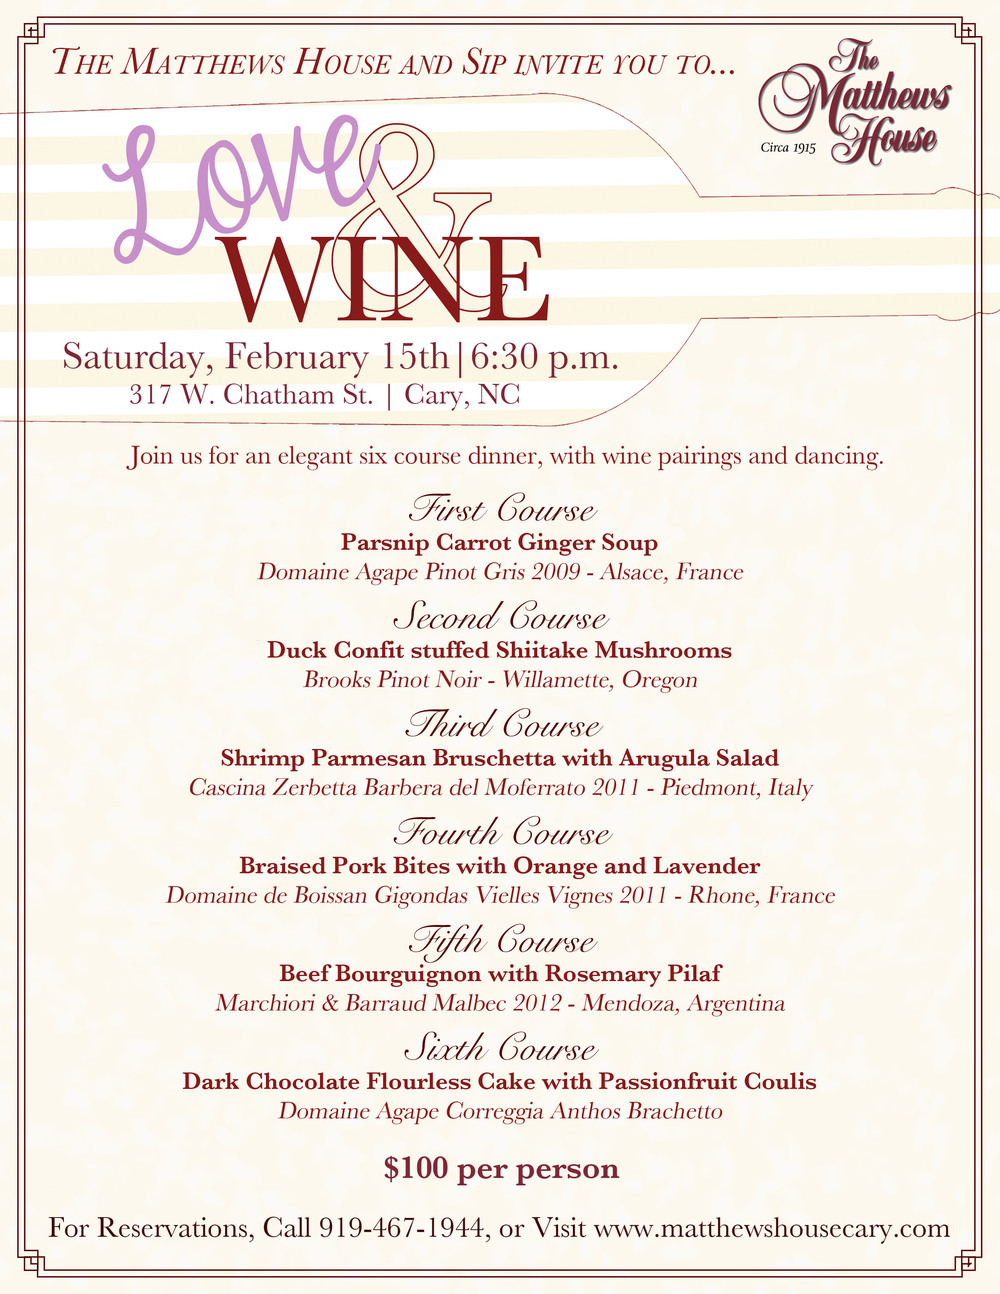 Valentine's Wine Dinner at The Matthews House. Cary, NC